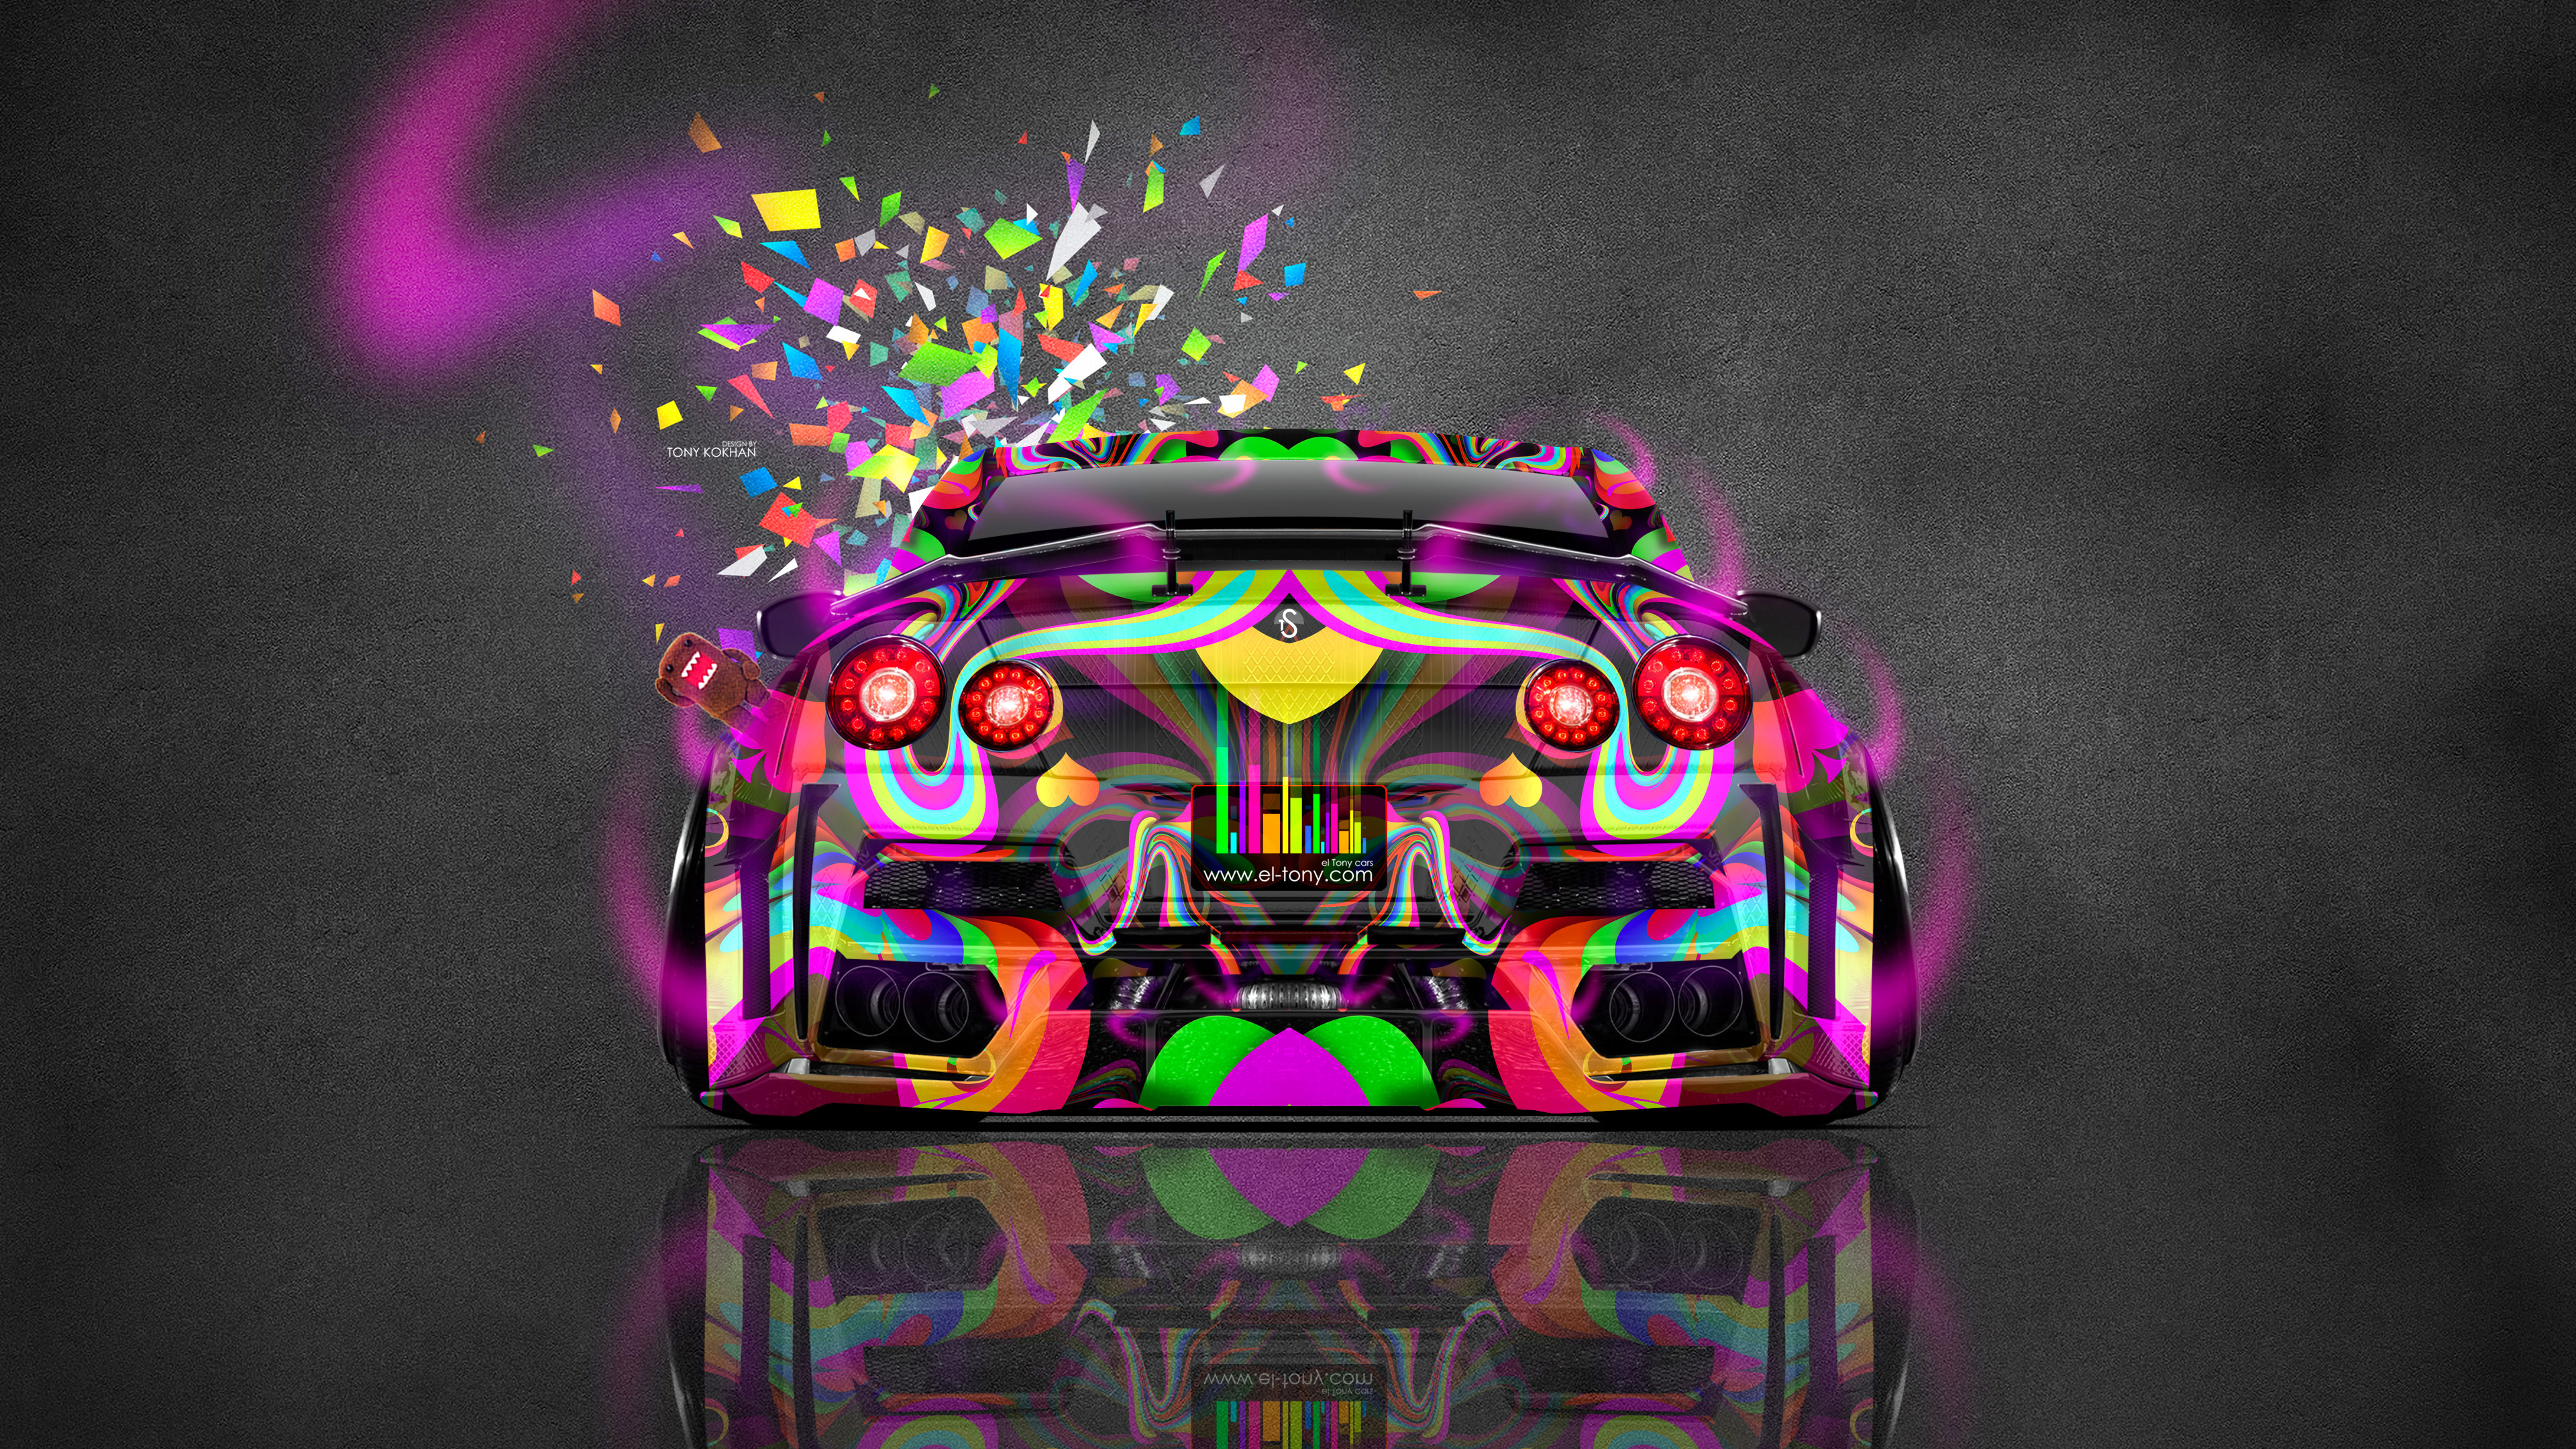 Nissan Gtr R35 Kuhl Back Jdm Domo Kun Toy Car 2016 Wallpapers 4k El Tony El Tony